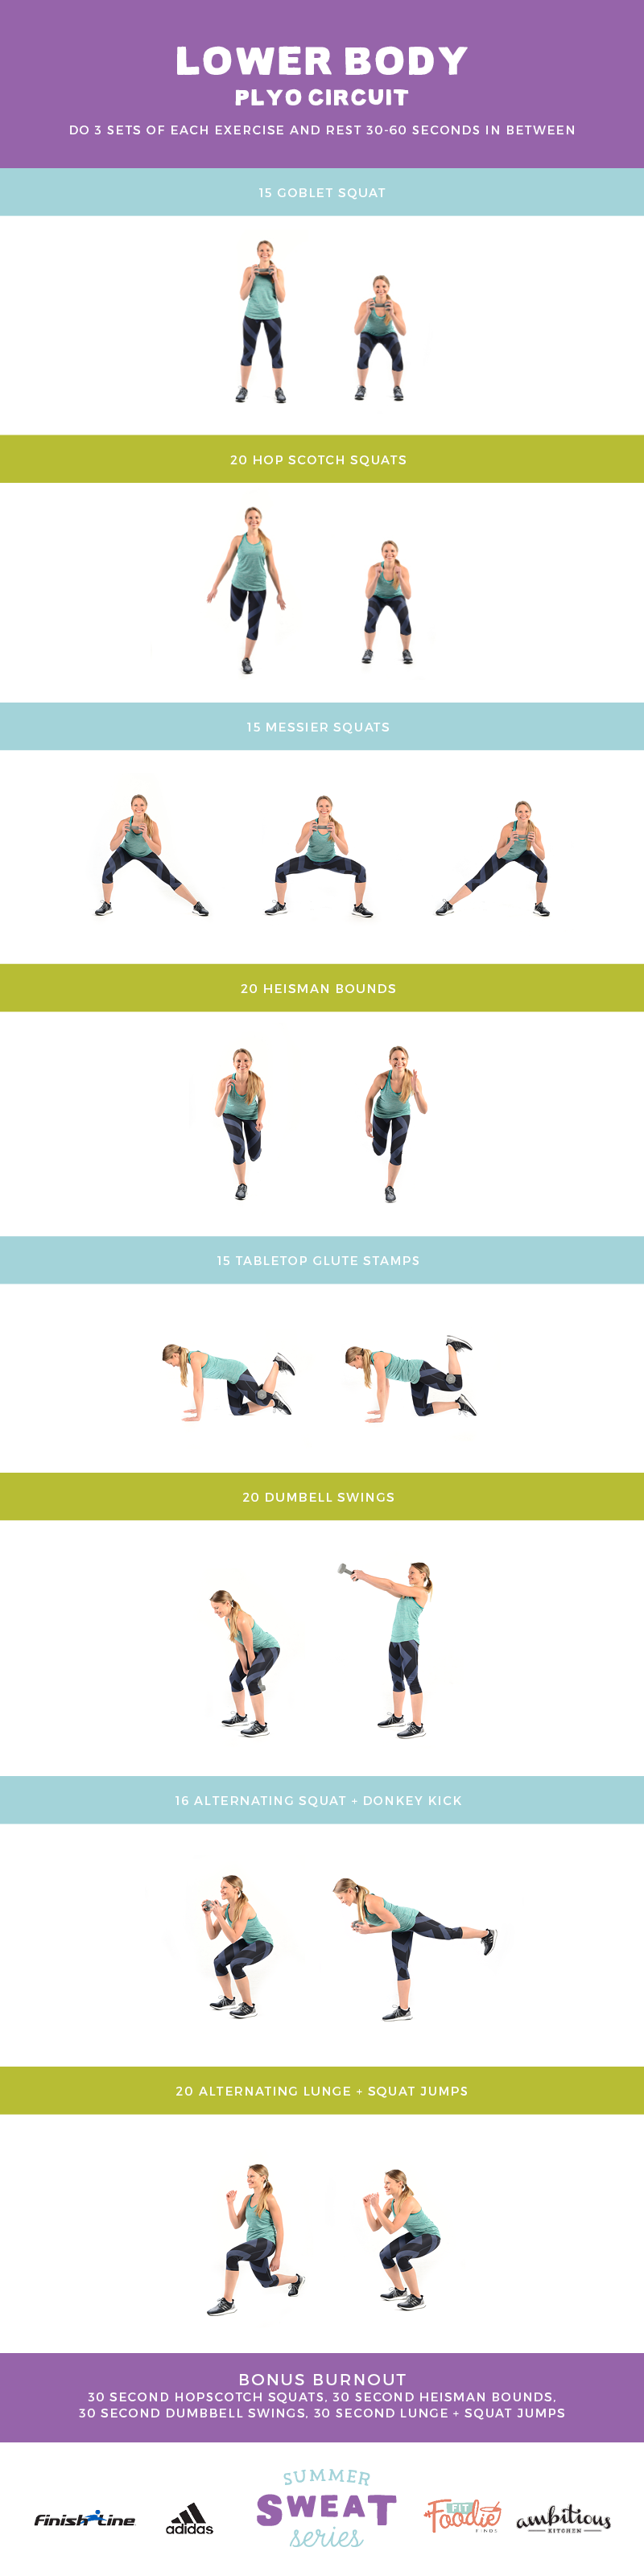 lower-body-plyo-circuit